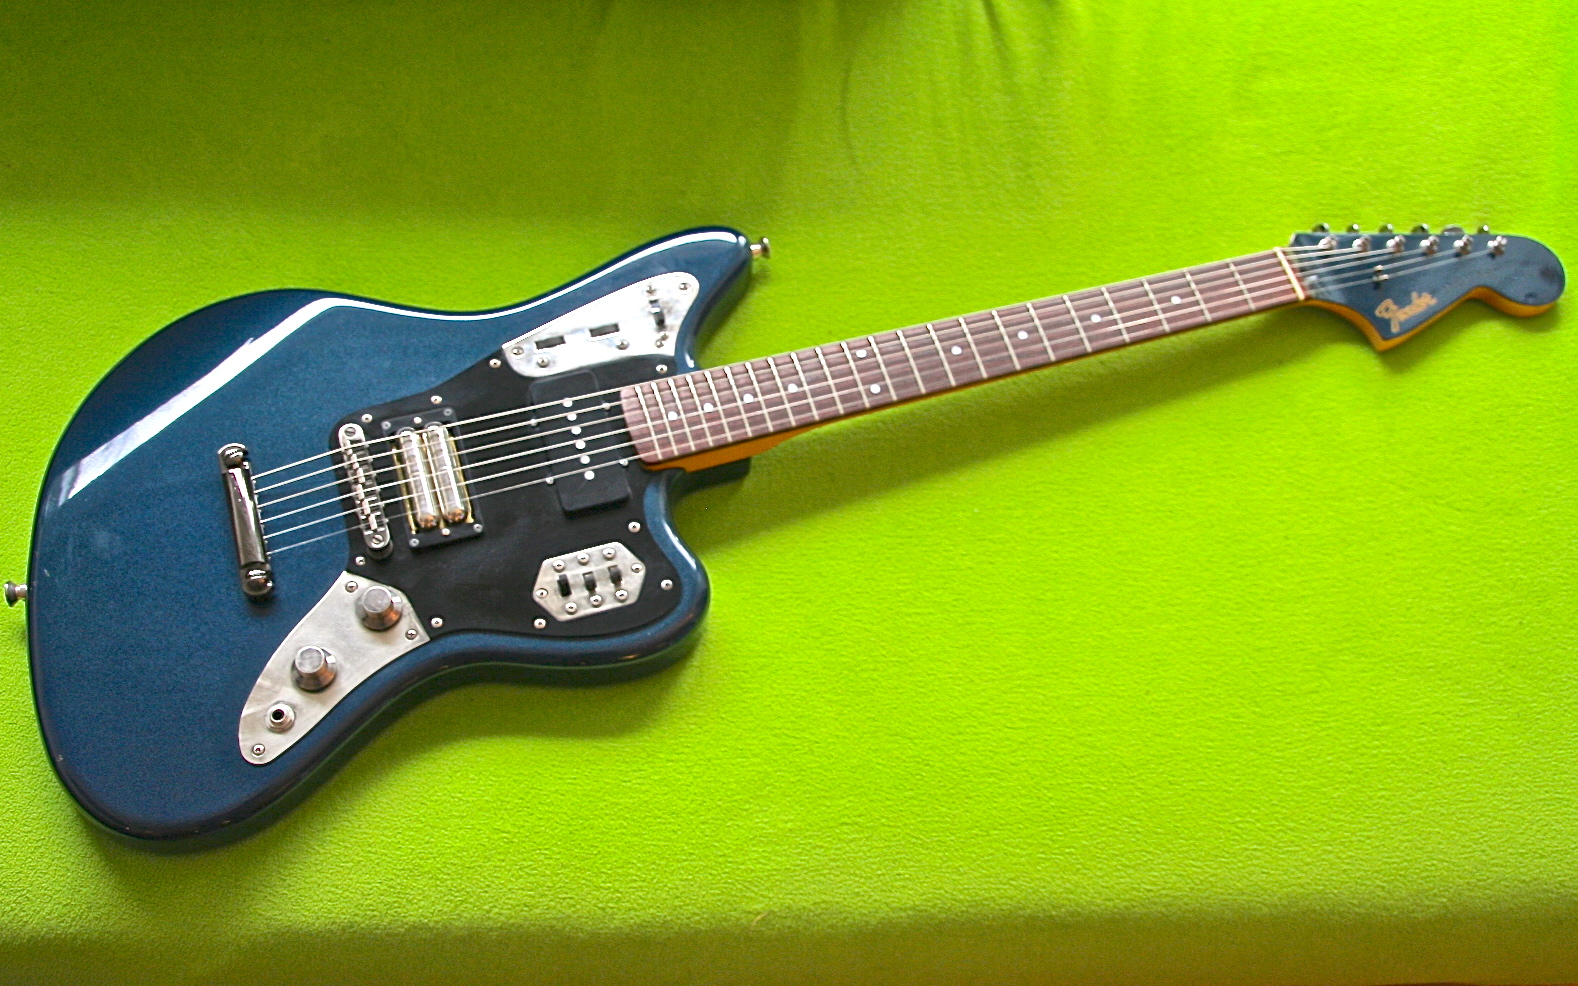 fender-jaguar-special-gunmetalicblue-1